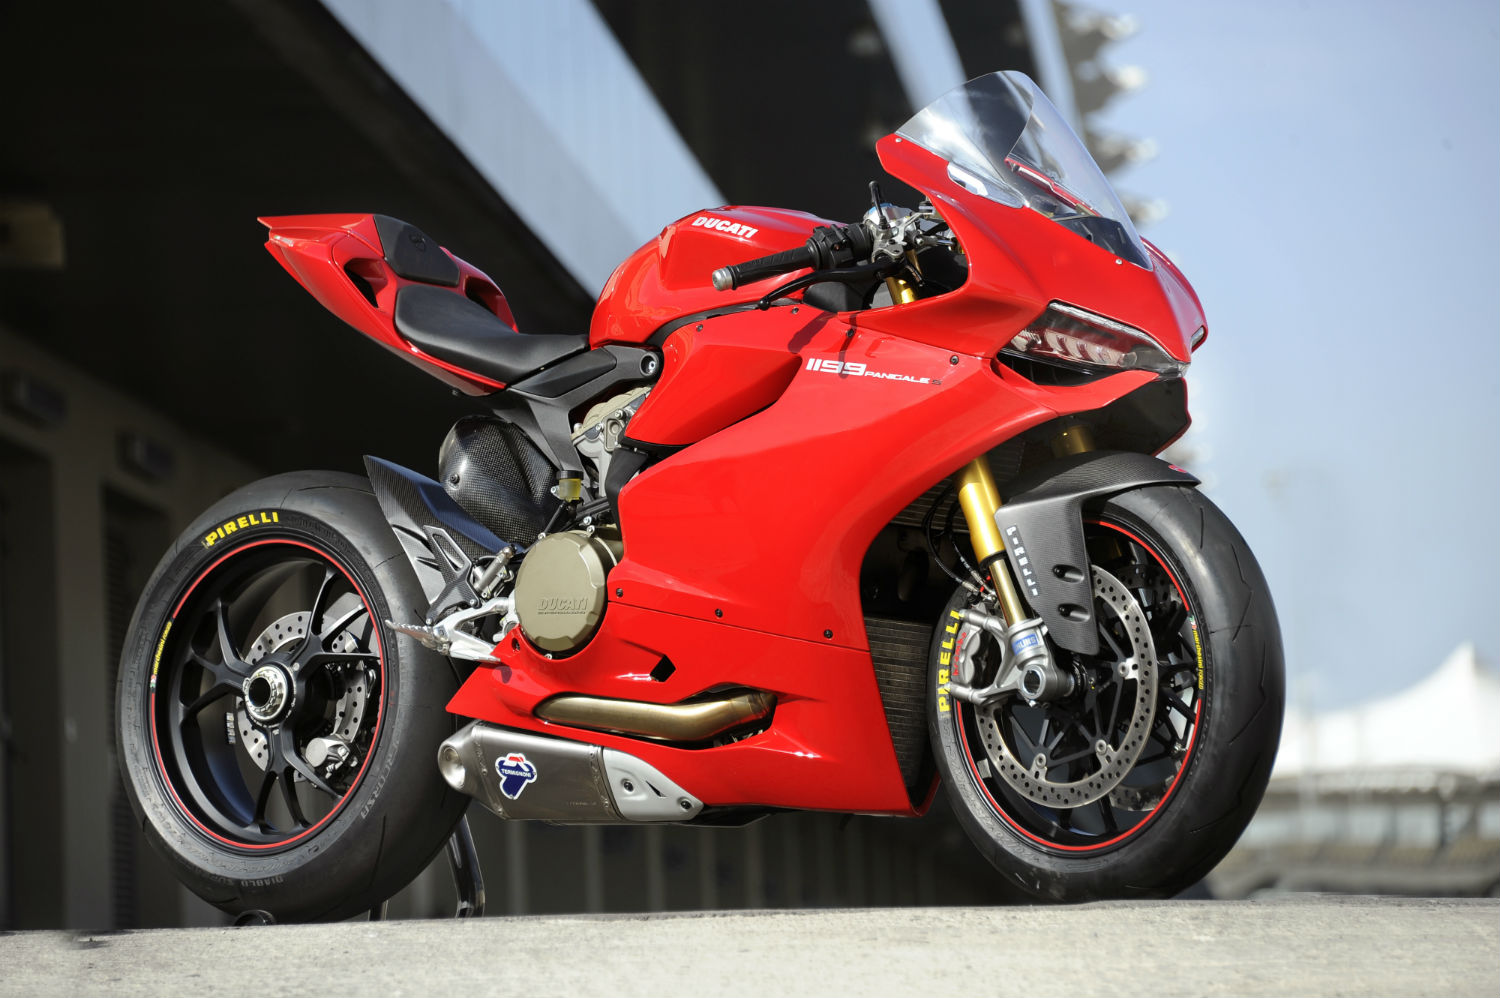 Ducati 1199 Panigale recalled in the US